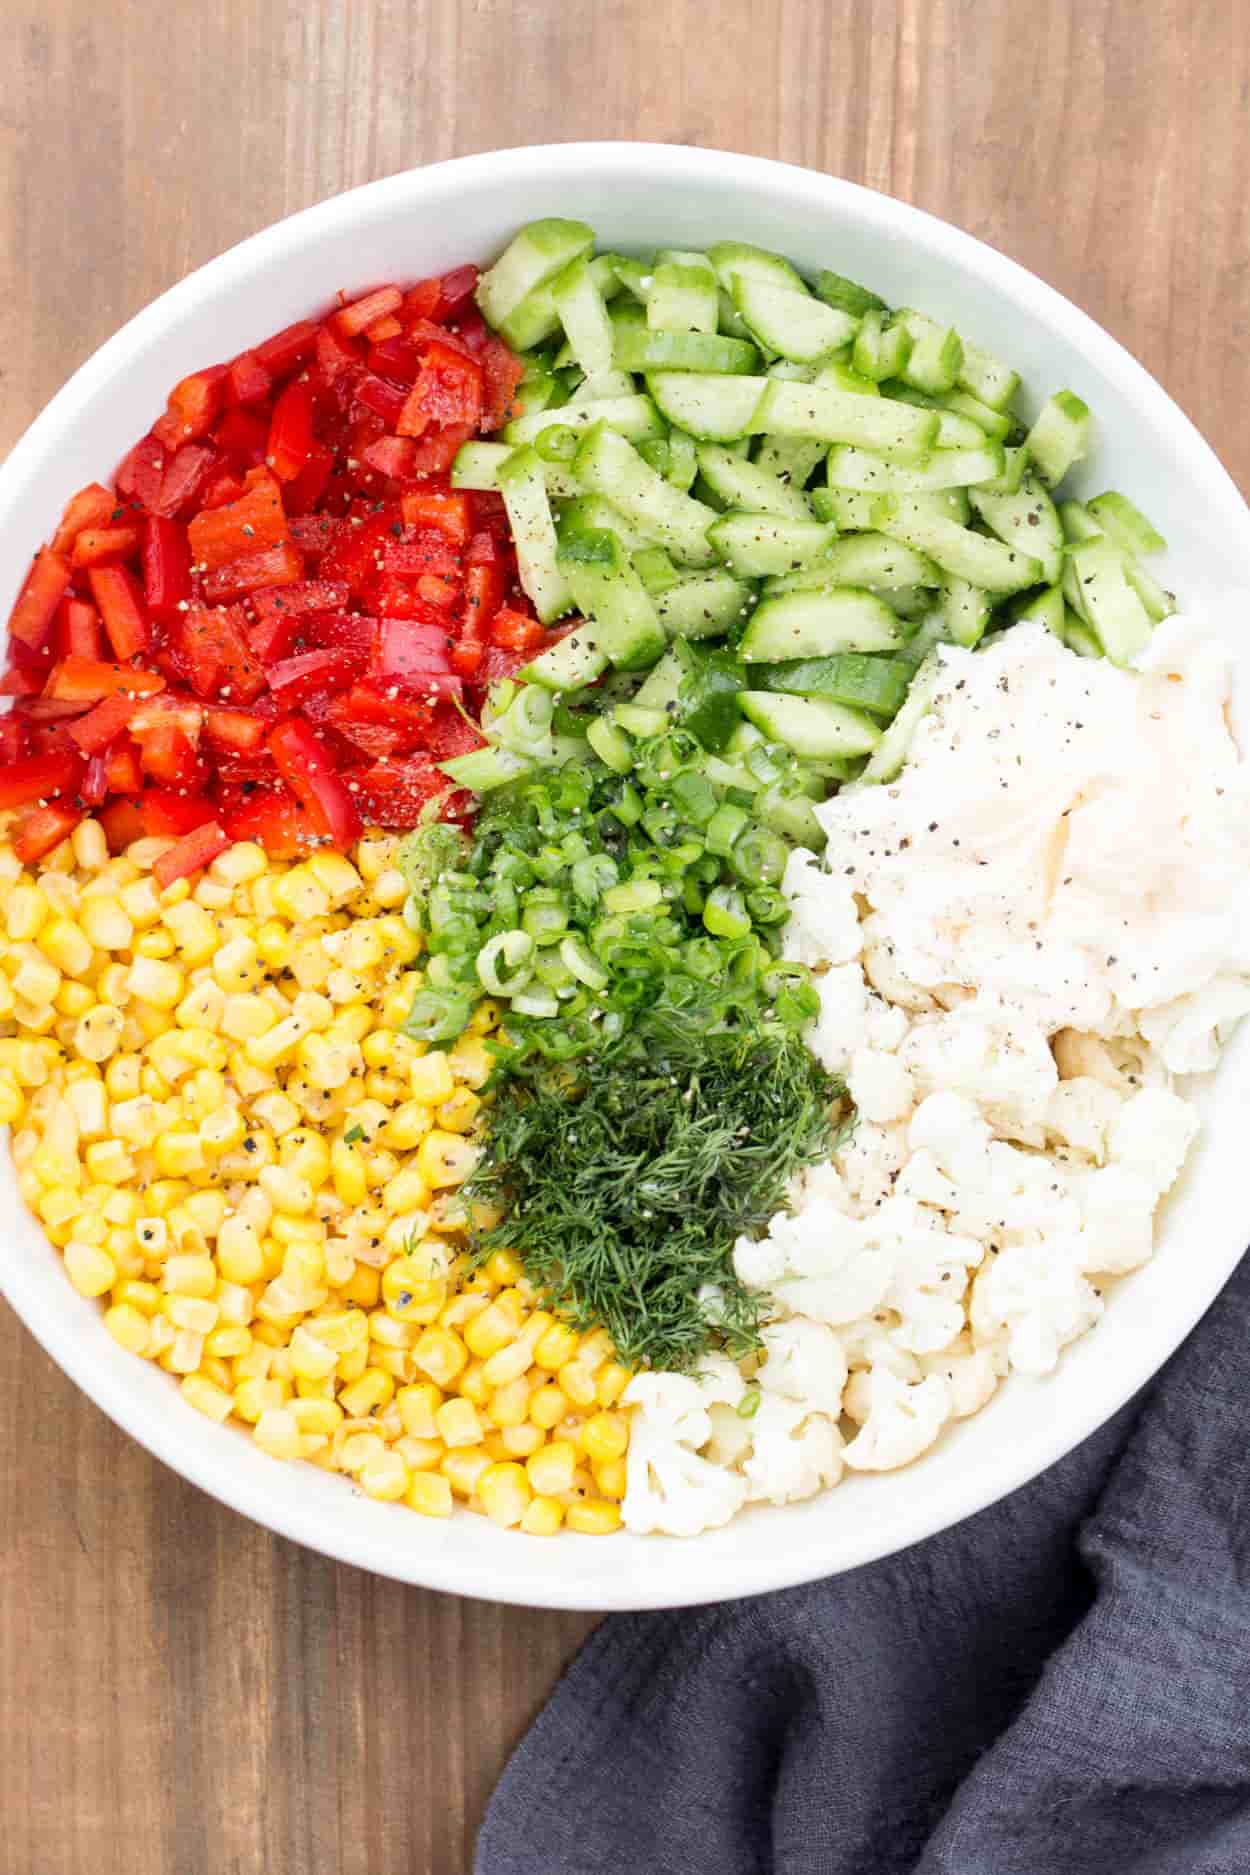 How to make this cauliflower salad with corn, peppers and cauliflower.